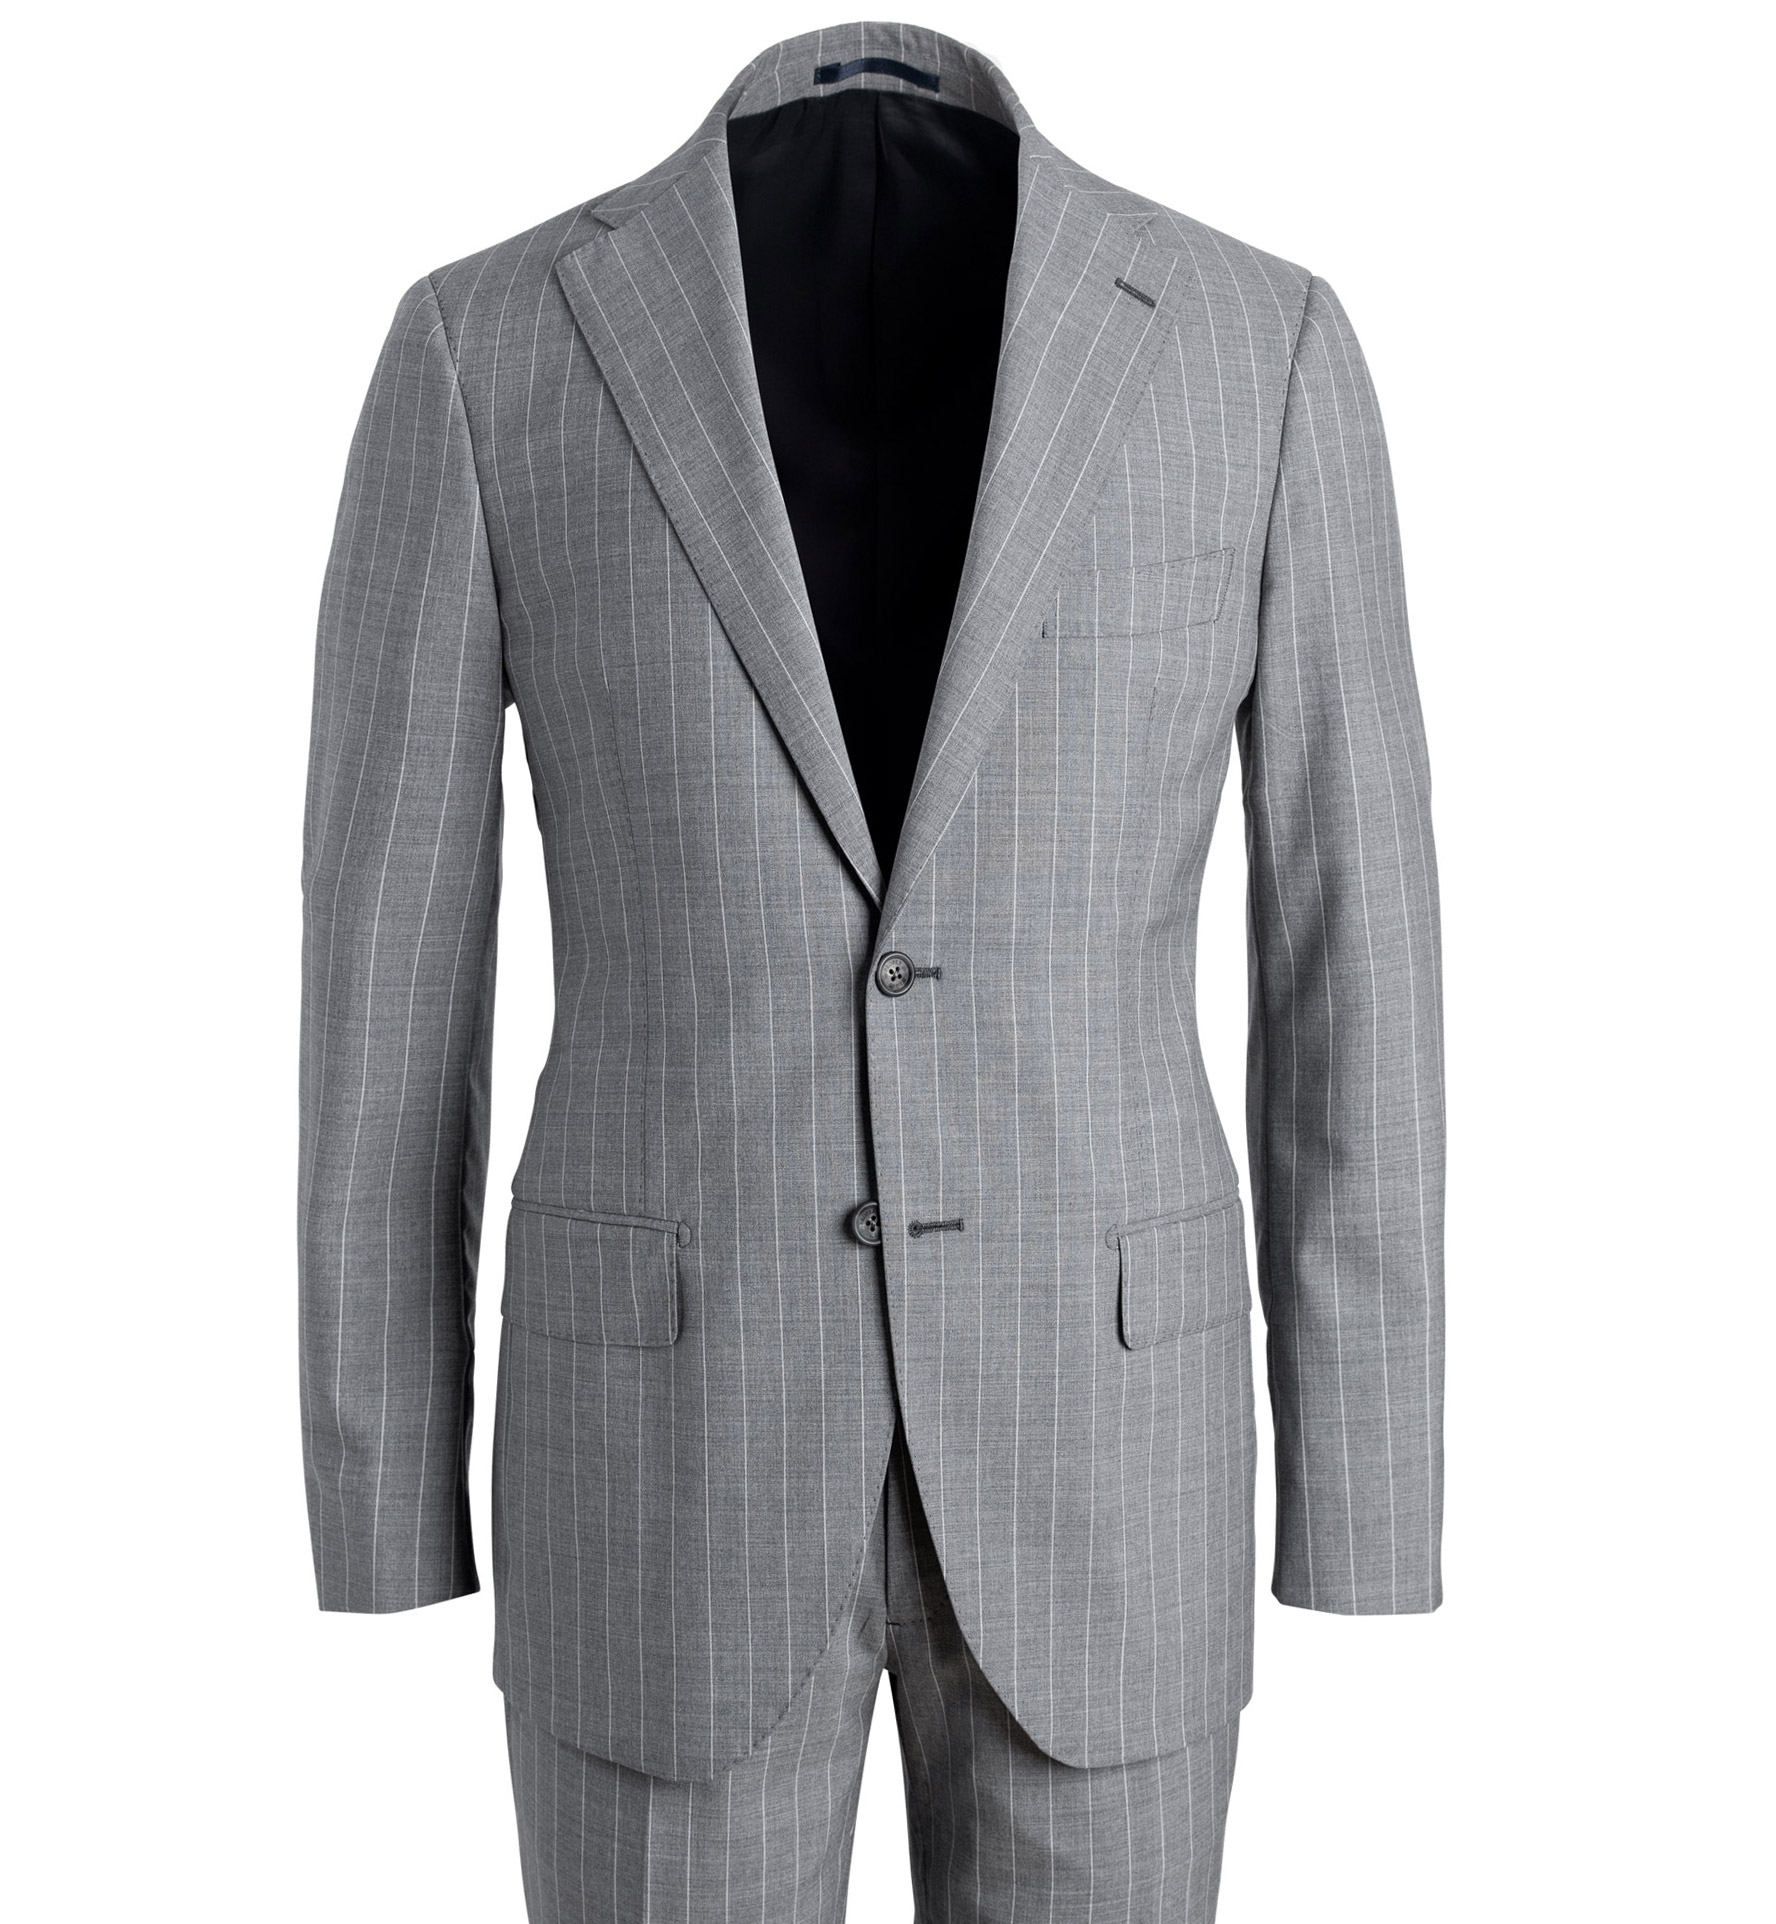 Zoom Image of Allen Light Grey S120s Pinstripe Tropical Wool Suit